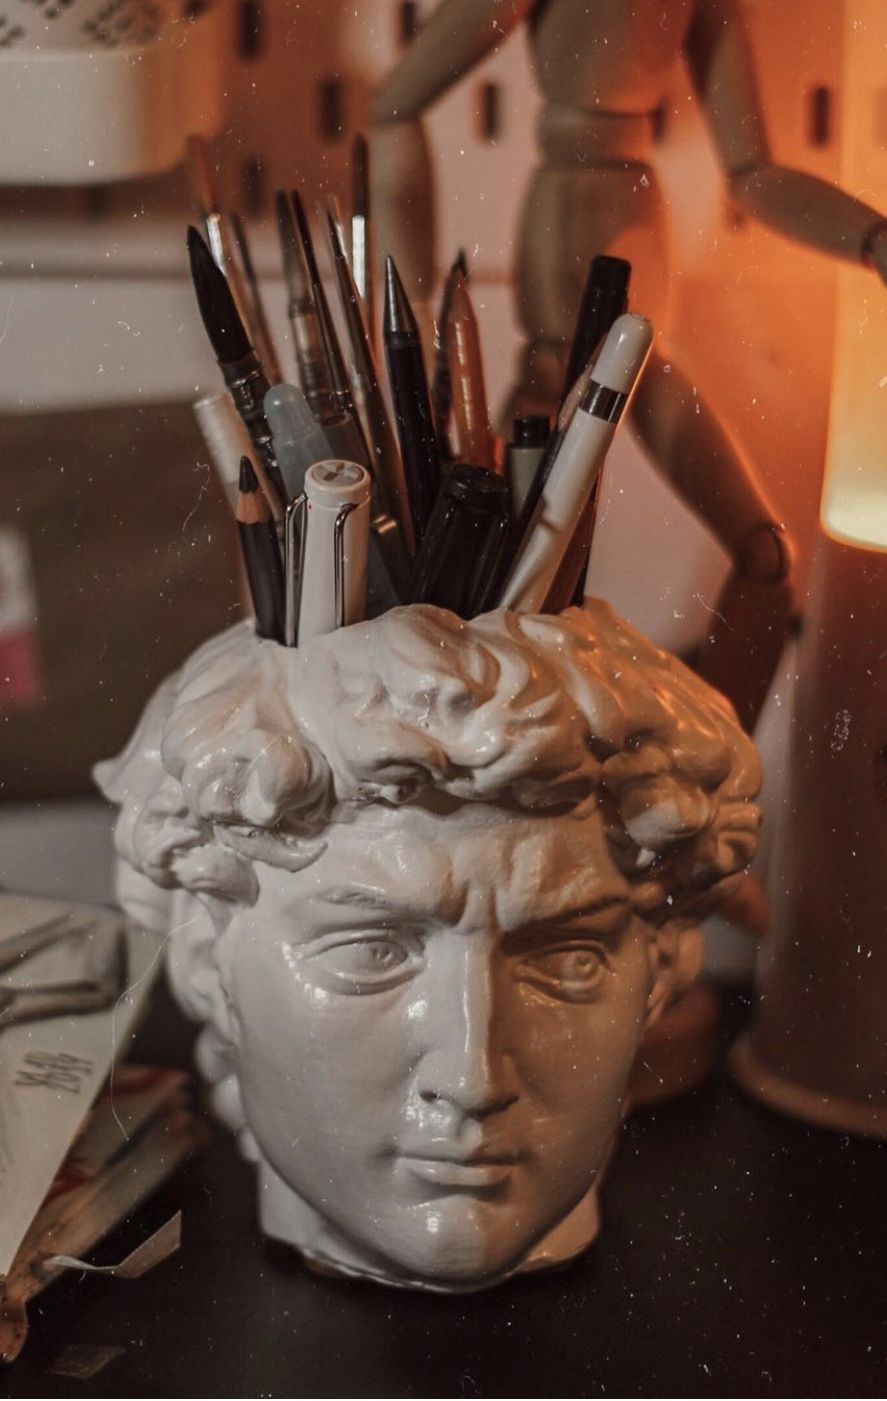 Brush holder. White plaster. Plaster bust. David by Michelangelo. Greek Statue #Antique #Bust #David #desk #Etsy #Holder #Michelangelo #Organizer #Pen #work office decor white